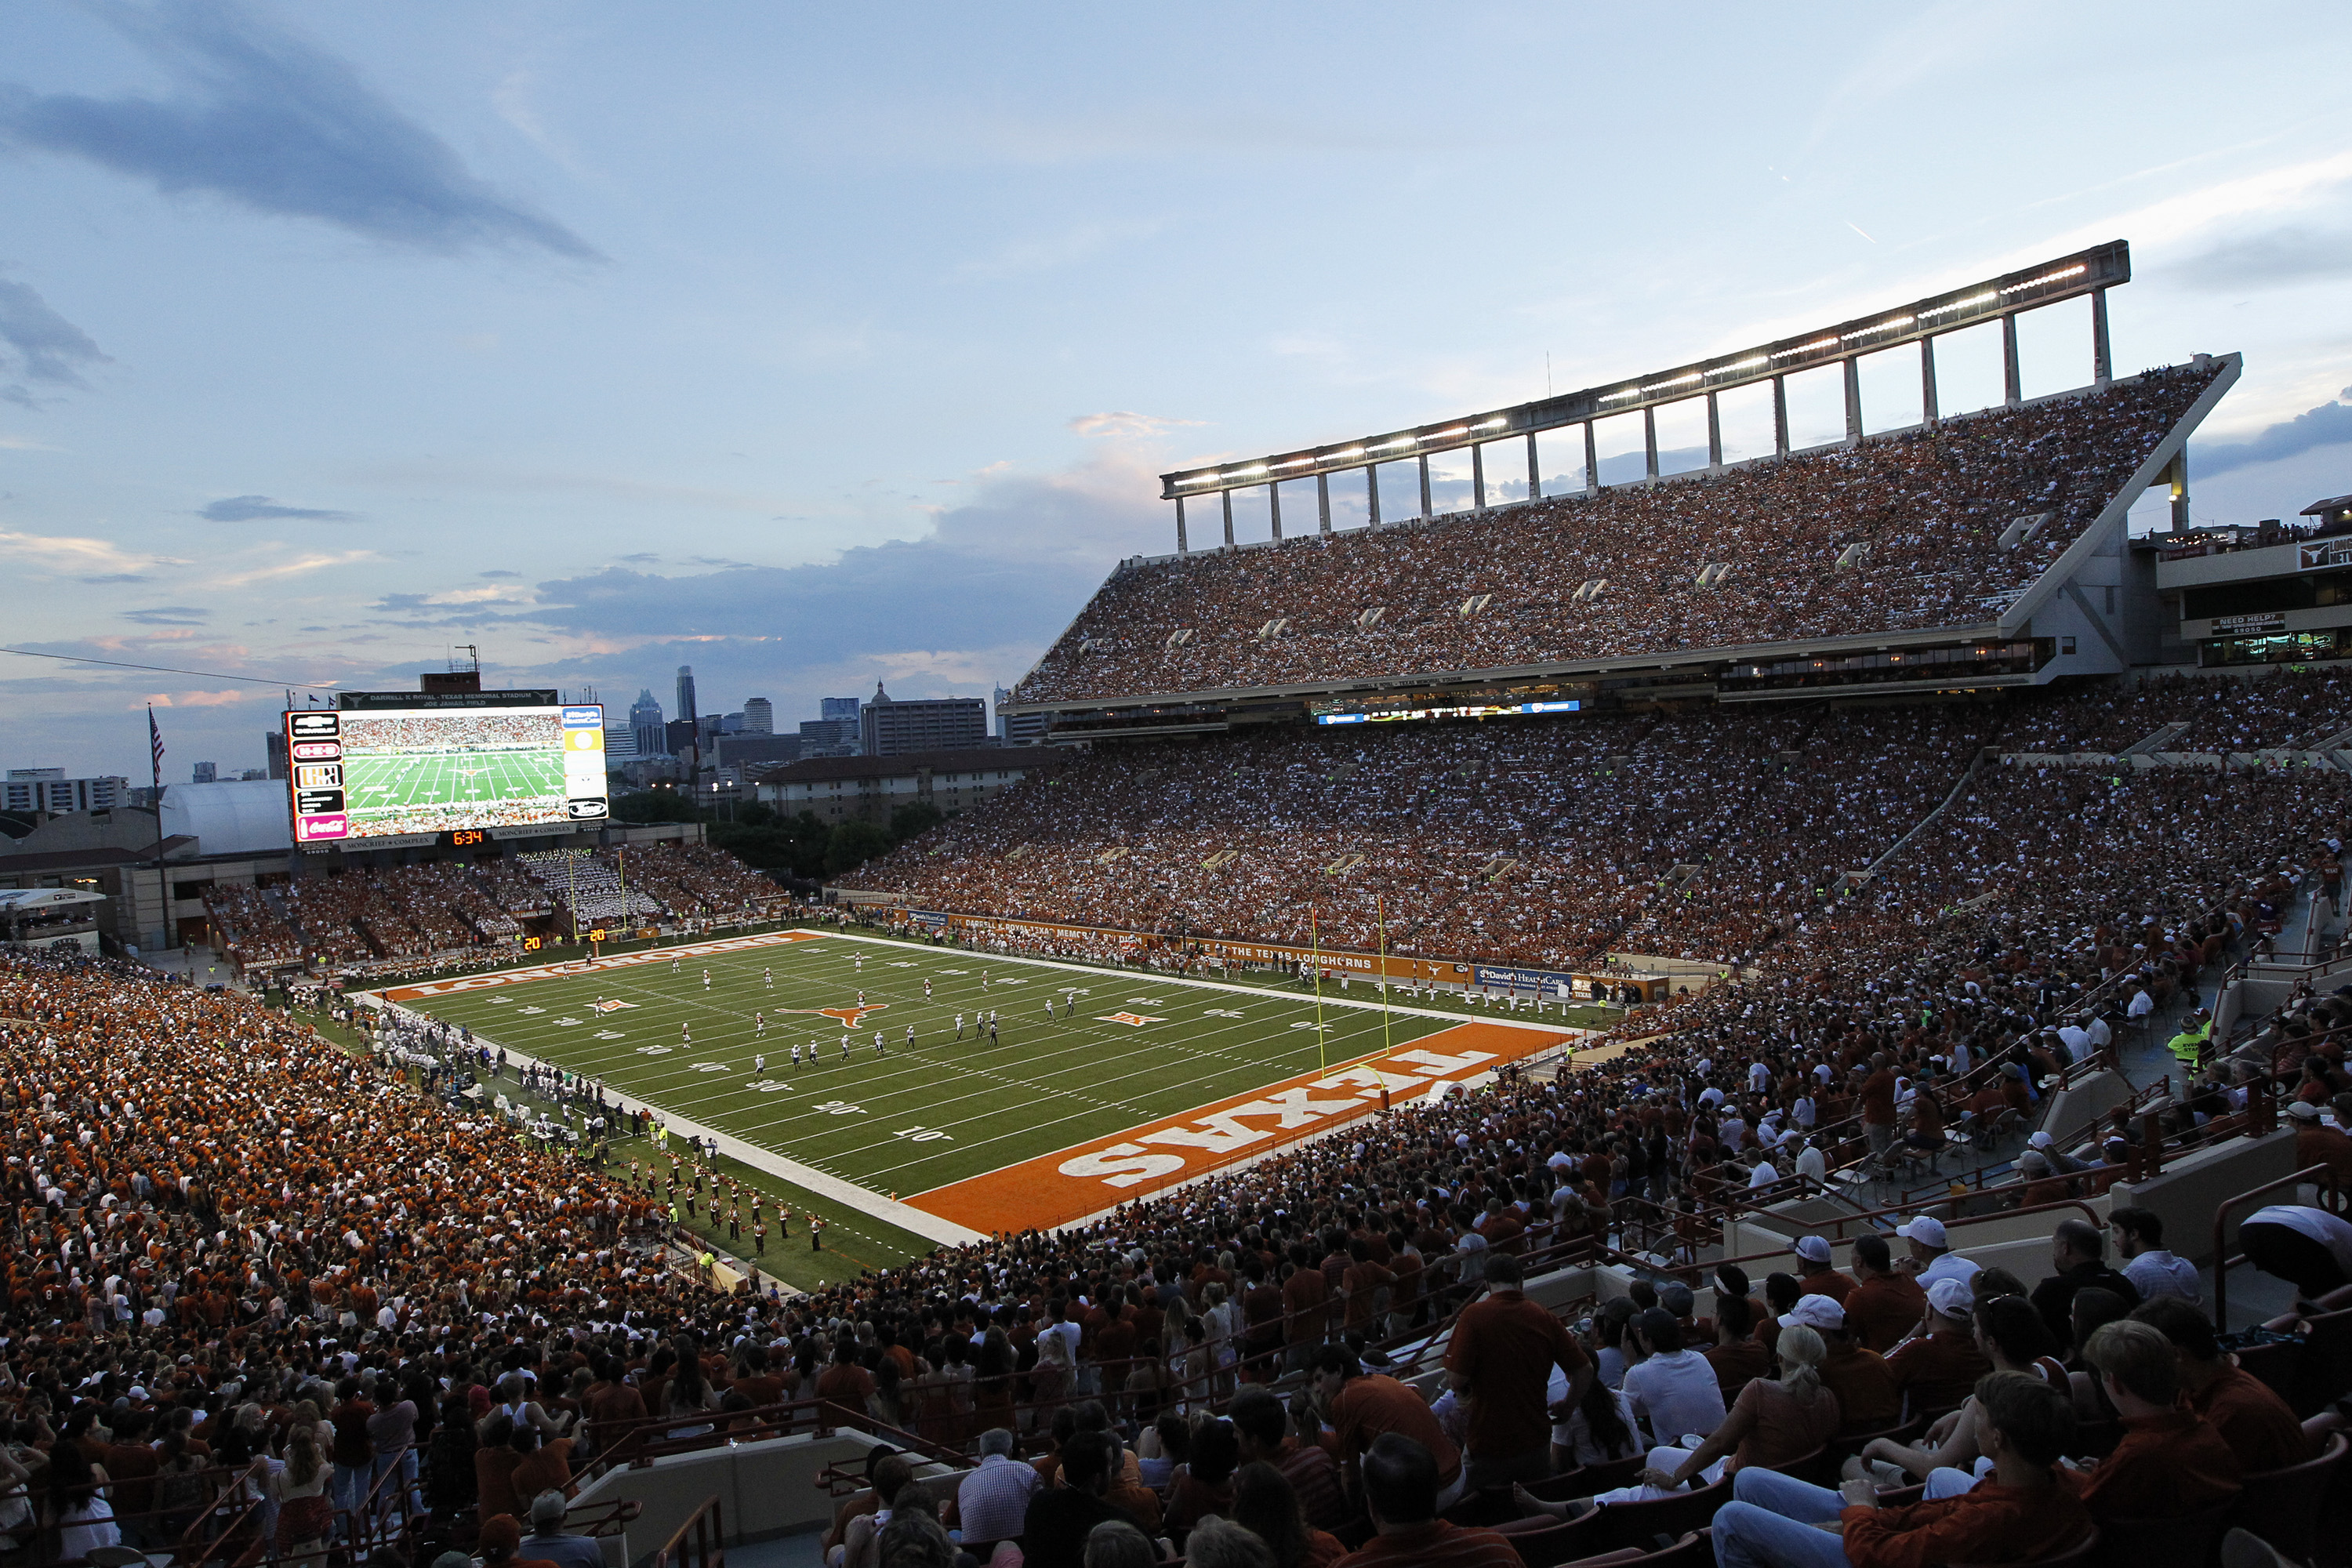 New games in Austin, Orlando, Tucson mean 42 college football bowls